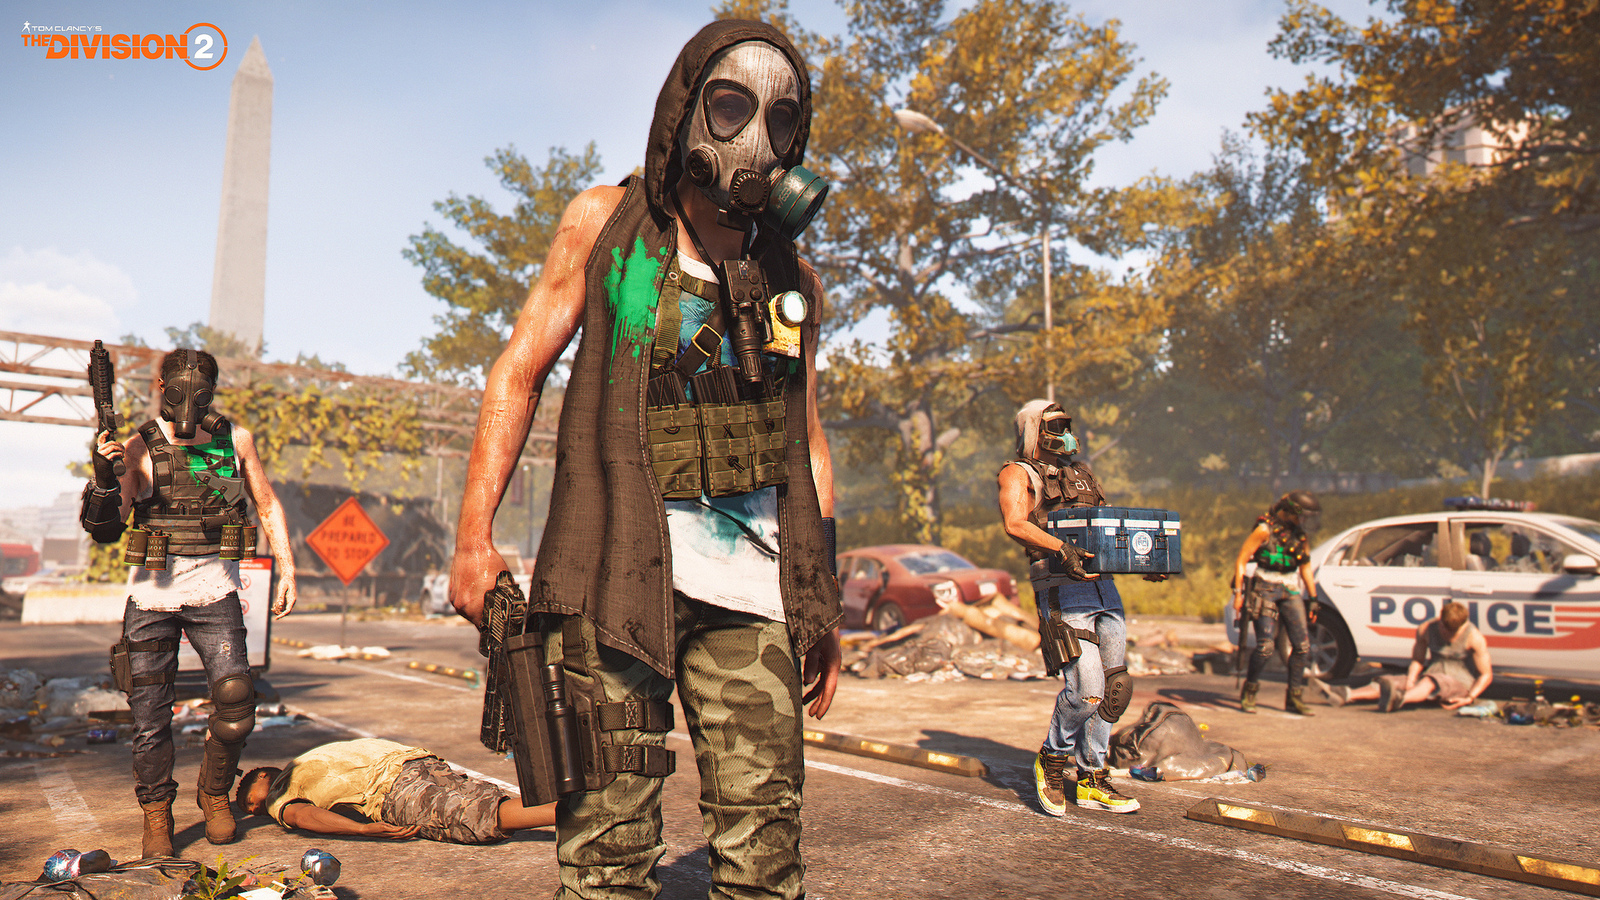 Polycarbonates | Division 2 | Locations Guide | How to Get